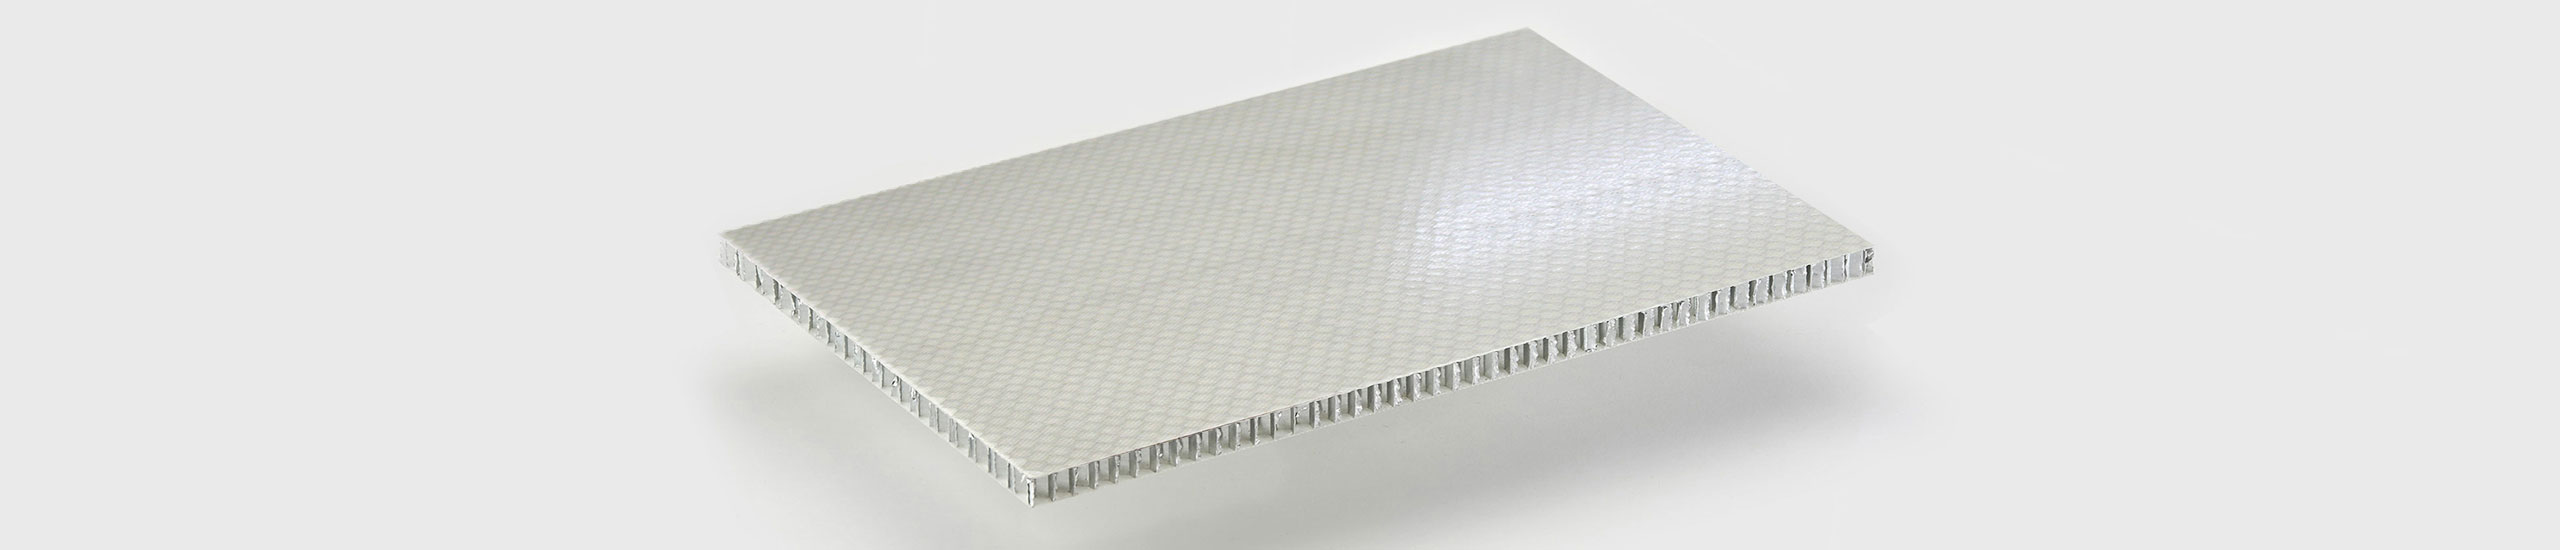 Sandwich Panels, Aluminum and Thermoplastics honeycombs and Foams